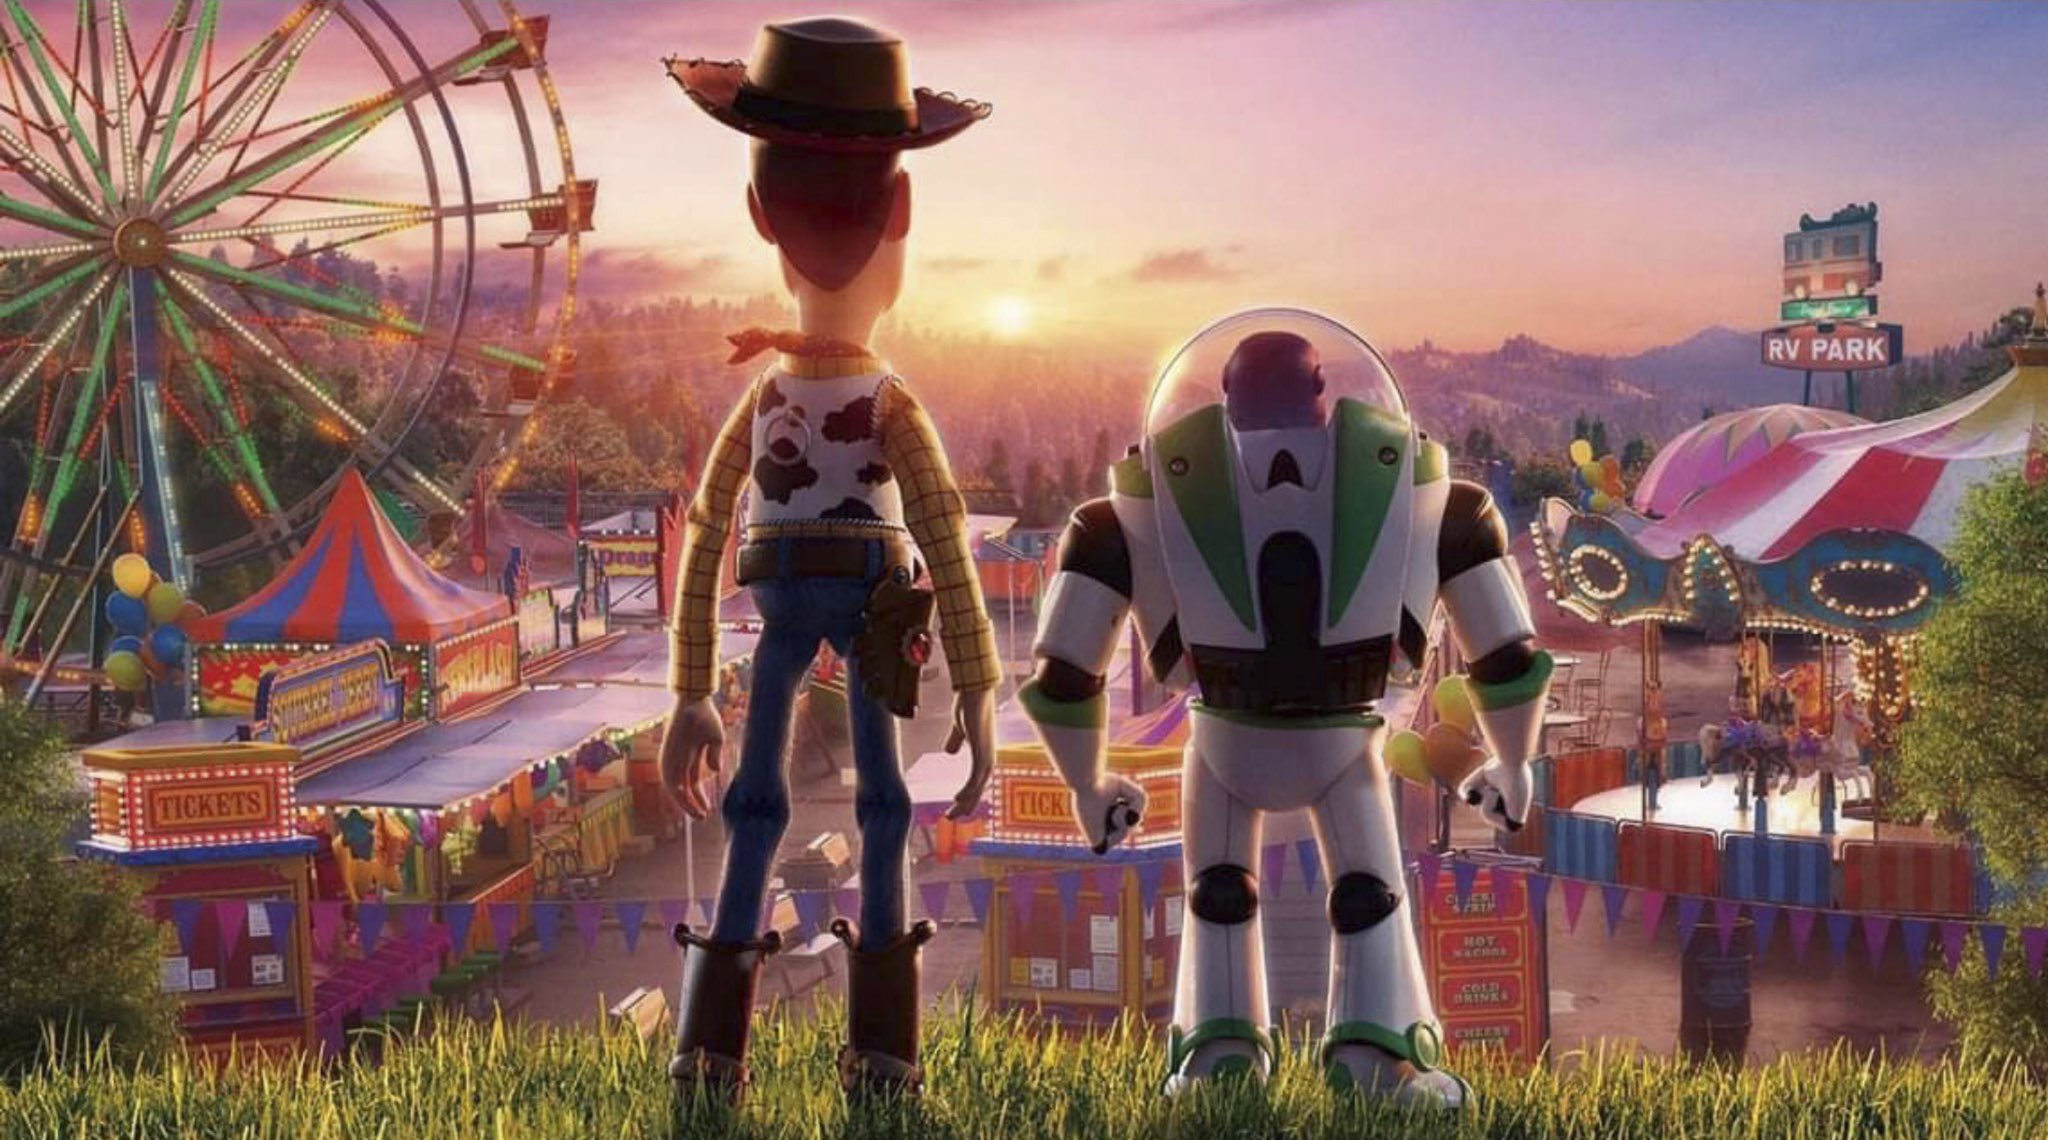 US Box Office Results: June 21 - 23, 2019